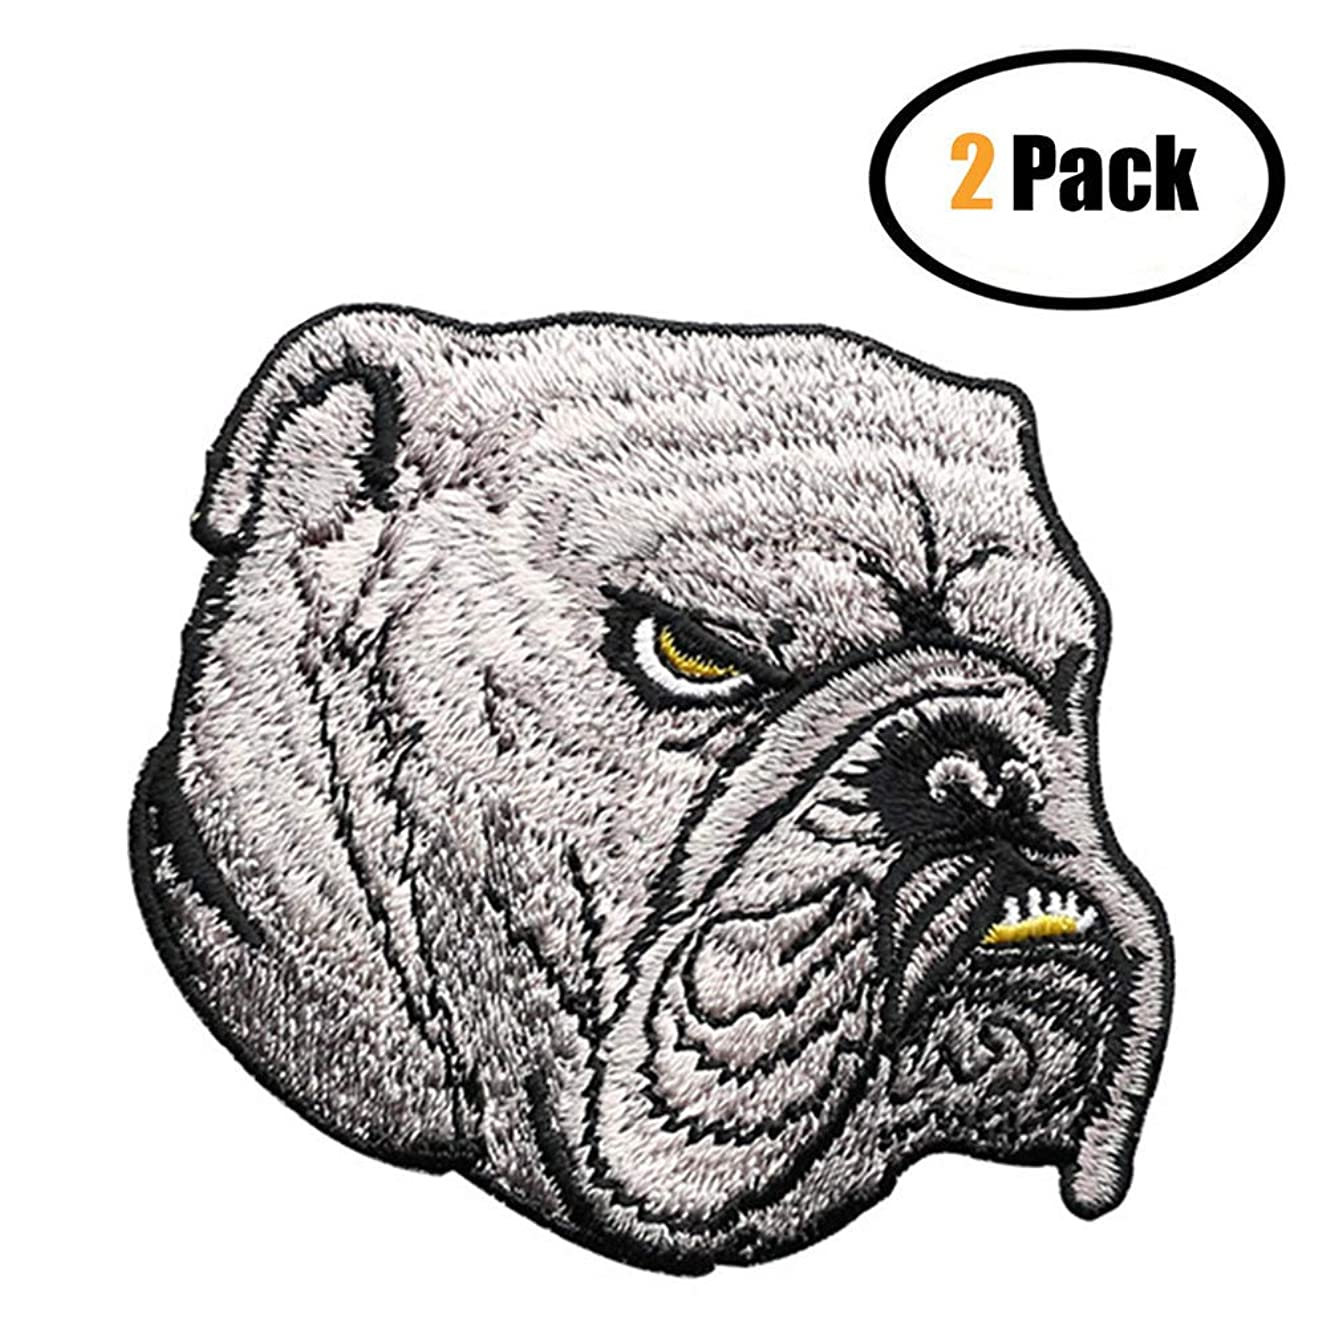 2 Pcs Embroidered Bulldog Patches,Iron On Patches, Sew On Applique Dog Patch,Embroidery Patches, Cool Patches for Men, Women, Boys, Girls, Kids